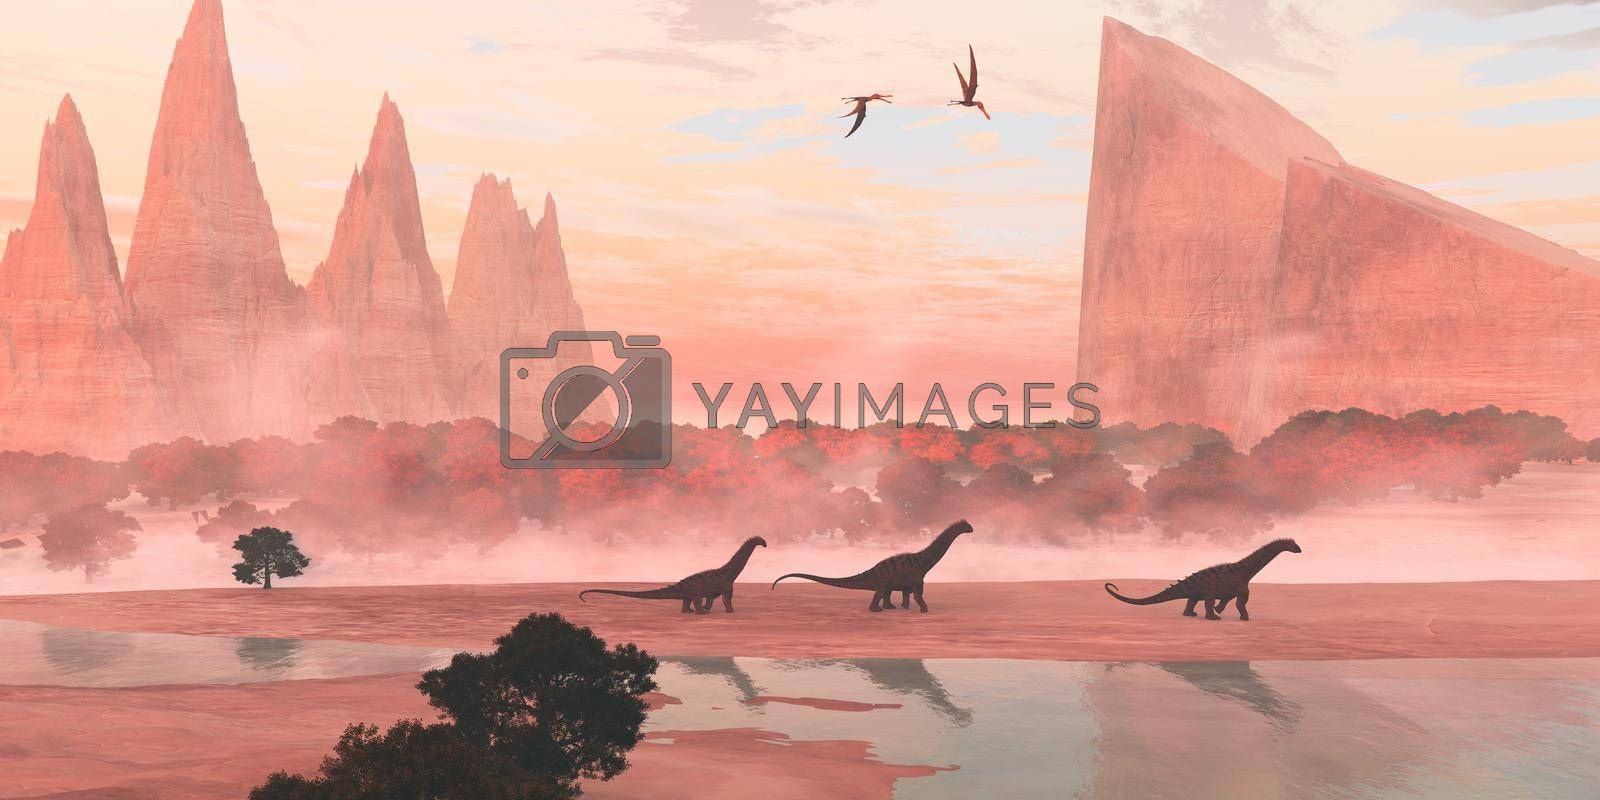 Anhanguera Pterosaurs fly over Alamosaurus sauropod dinosaurs walking along the banks of a river during the Cretaceous Period.